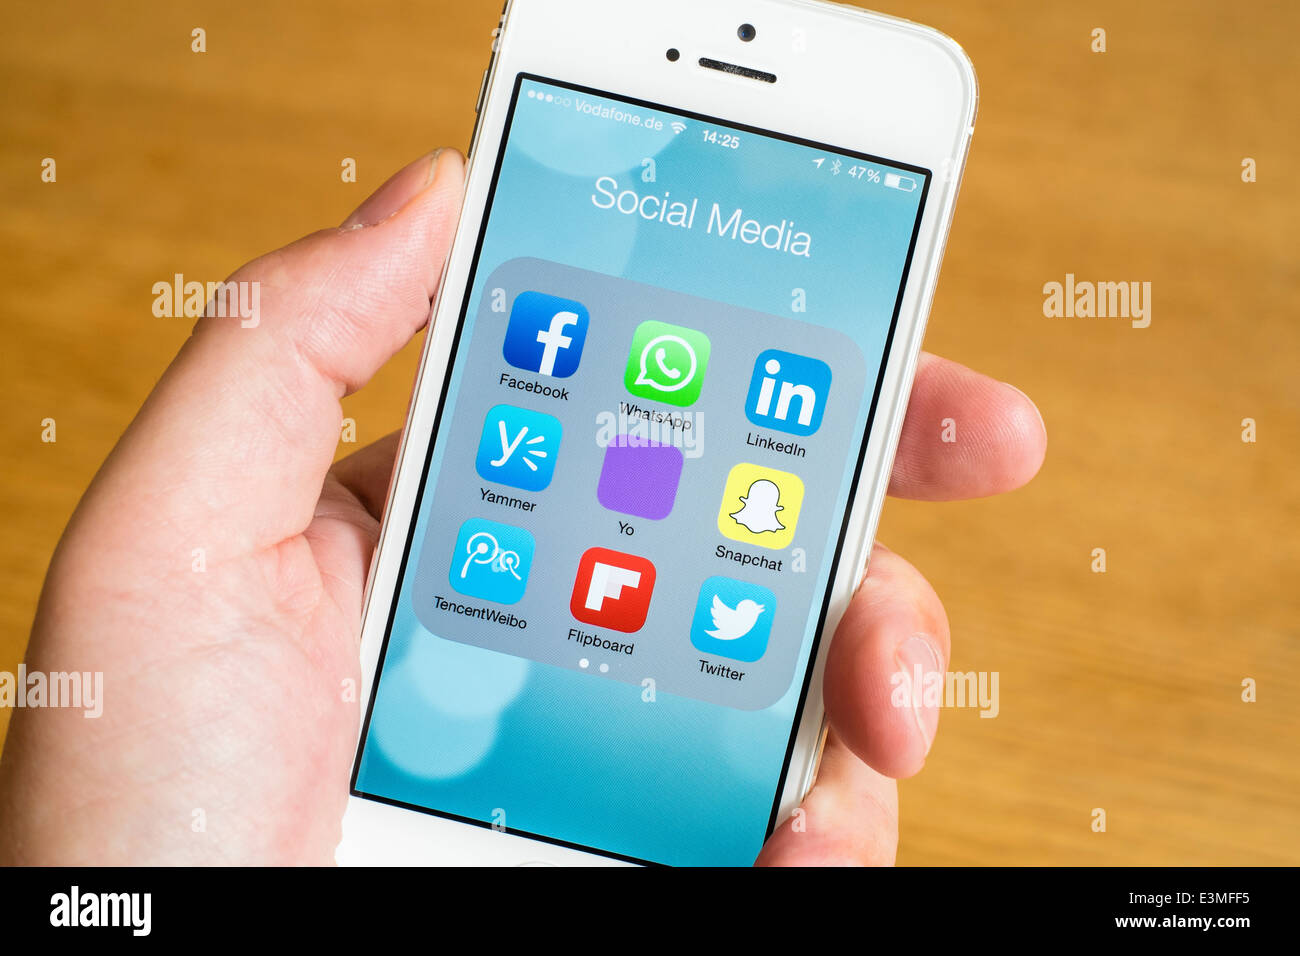 Detail of many social media apps on iPhone smart phone - Stock Image